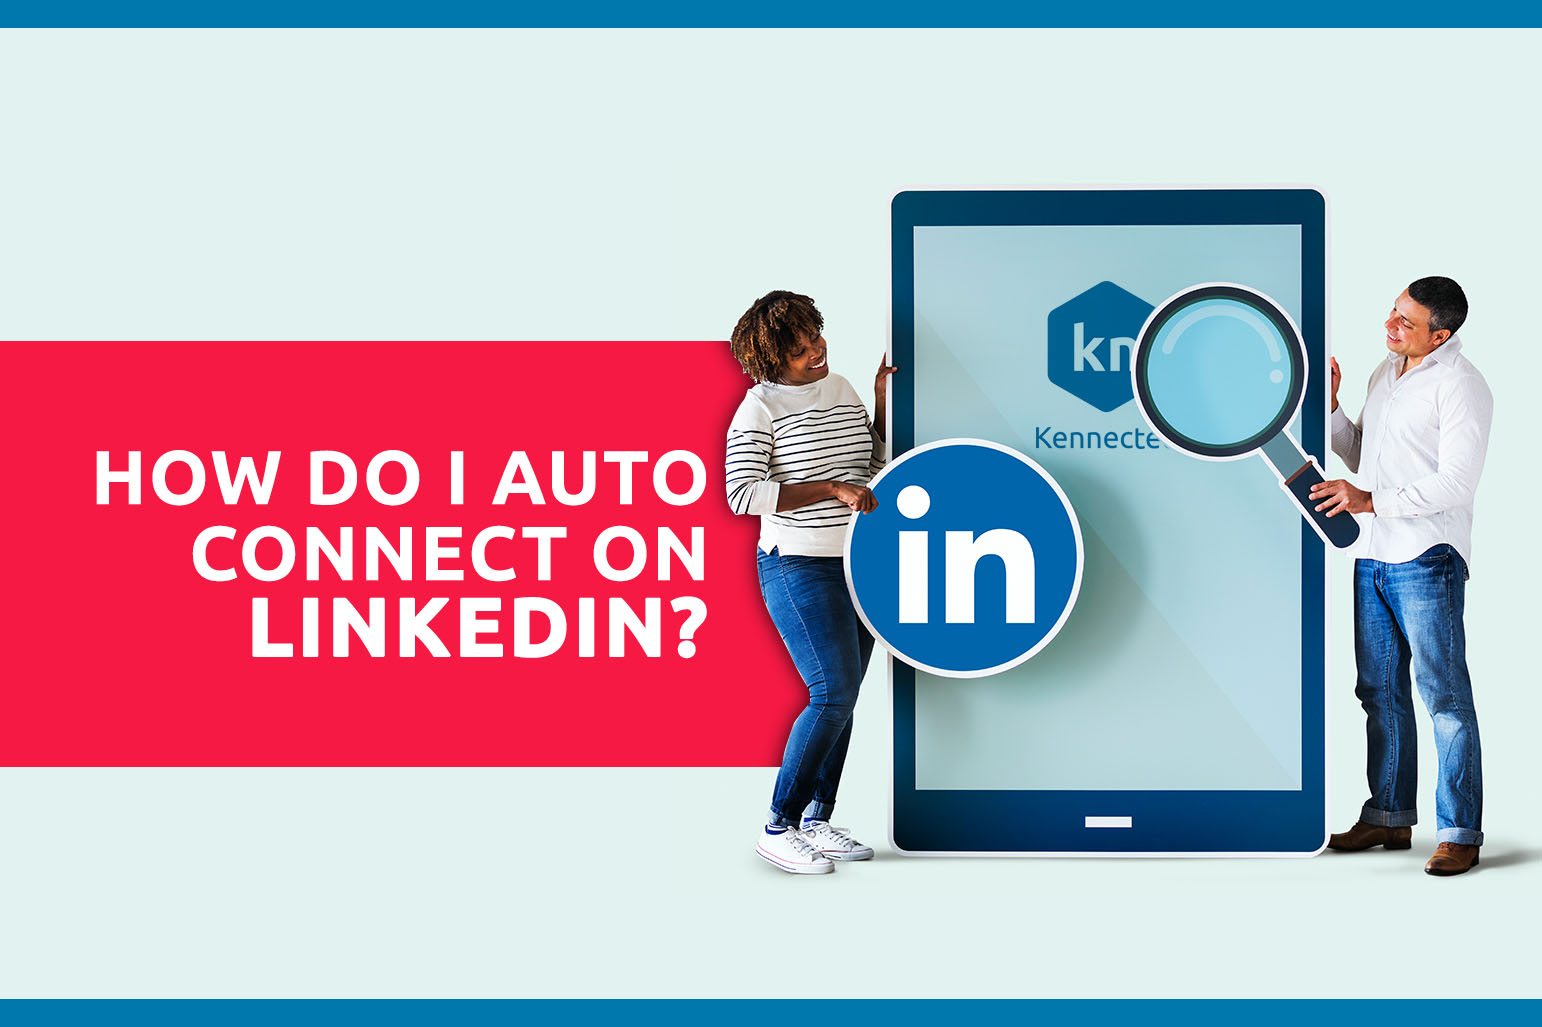 How Do I Auto Connect On LinkedIn?